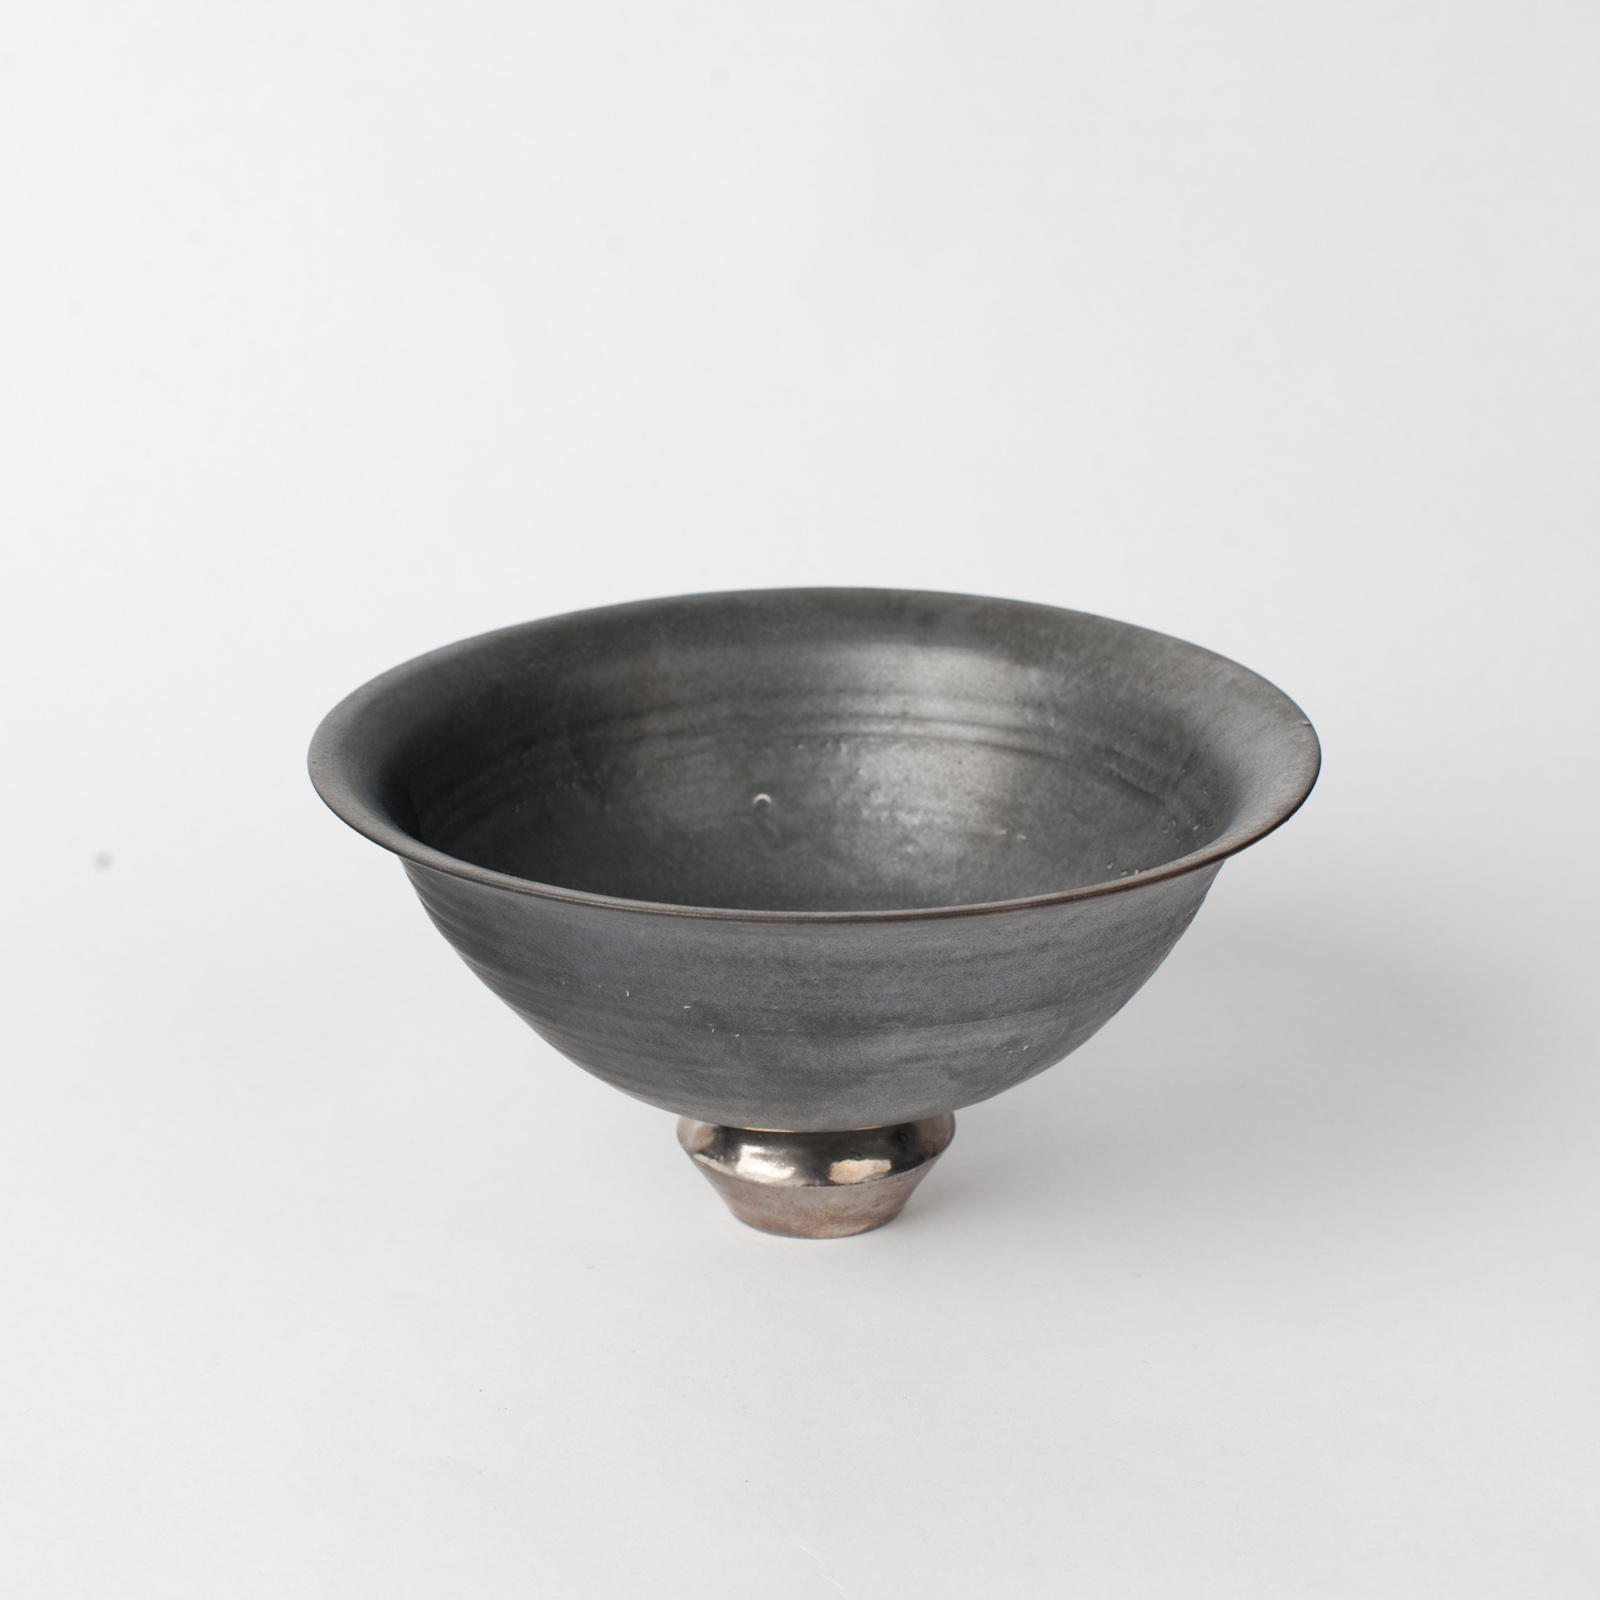 Standing Bowl In Stoneware With Metallic Glaze By Claudia Lau 02